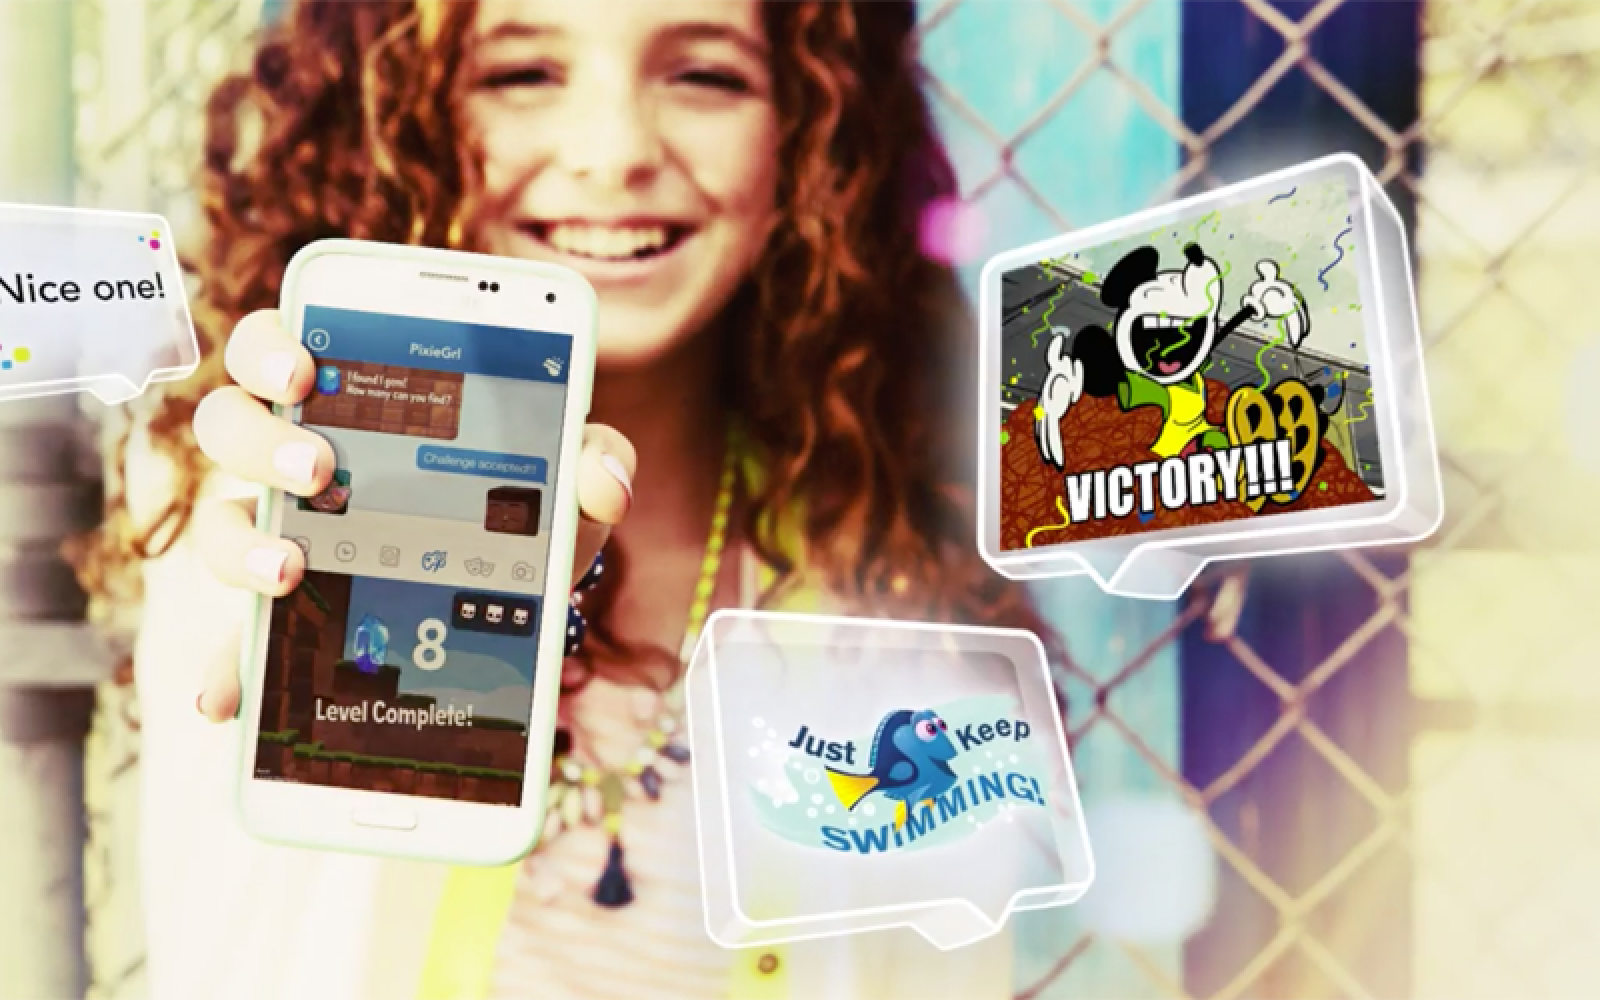 Disney launches child-focused messaging app w/ built-in games & safety features